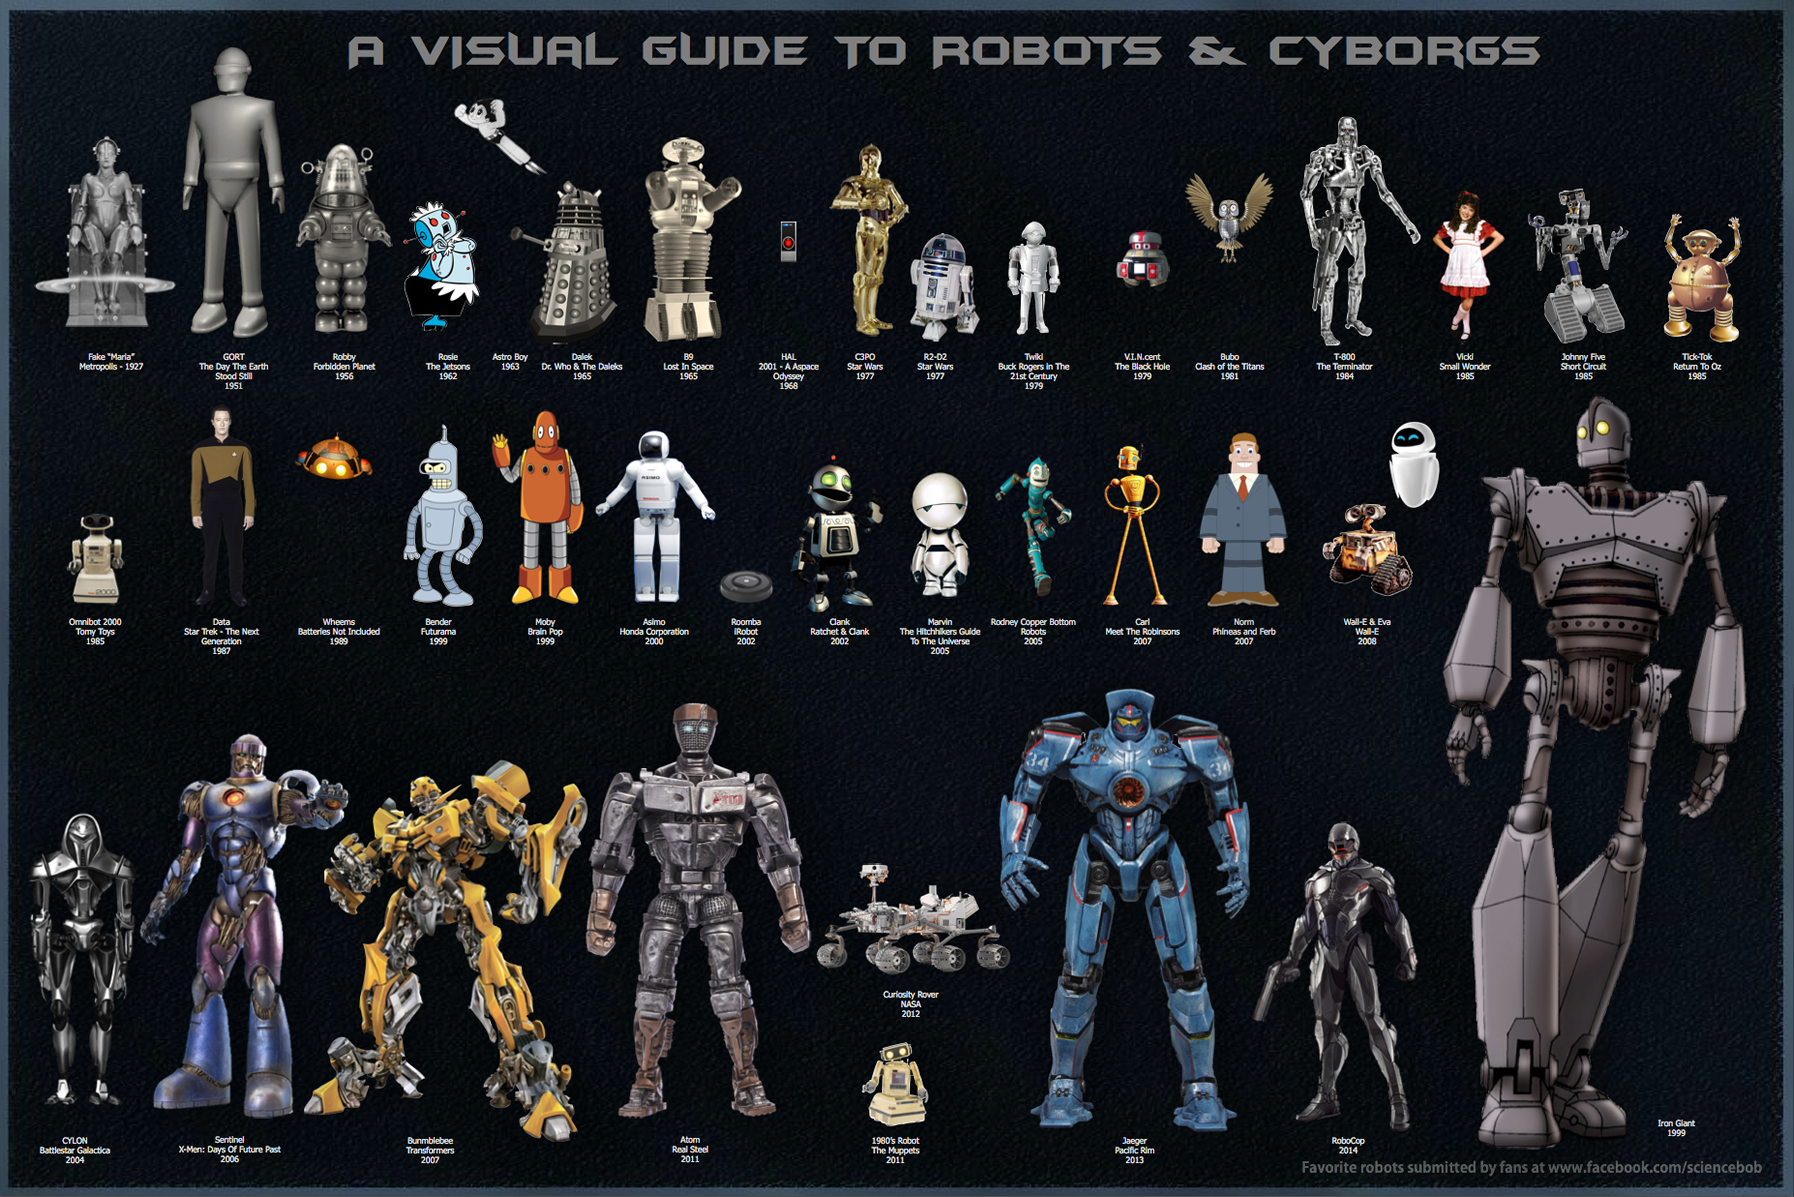 a-visual-guide-to-robots-and-cyborgs-in-movies-and-tv